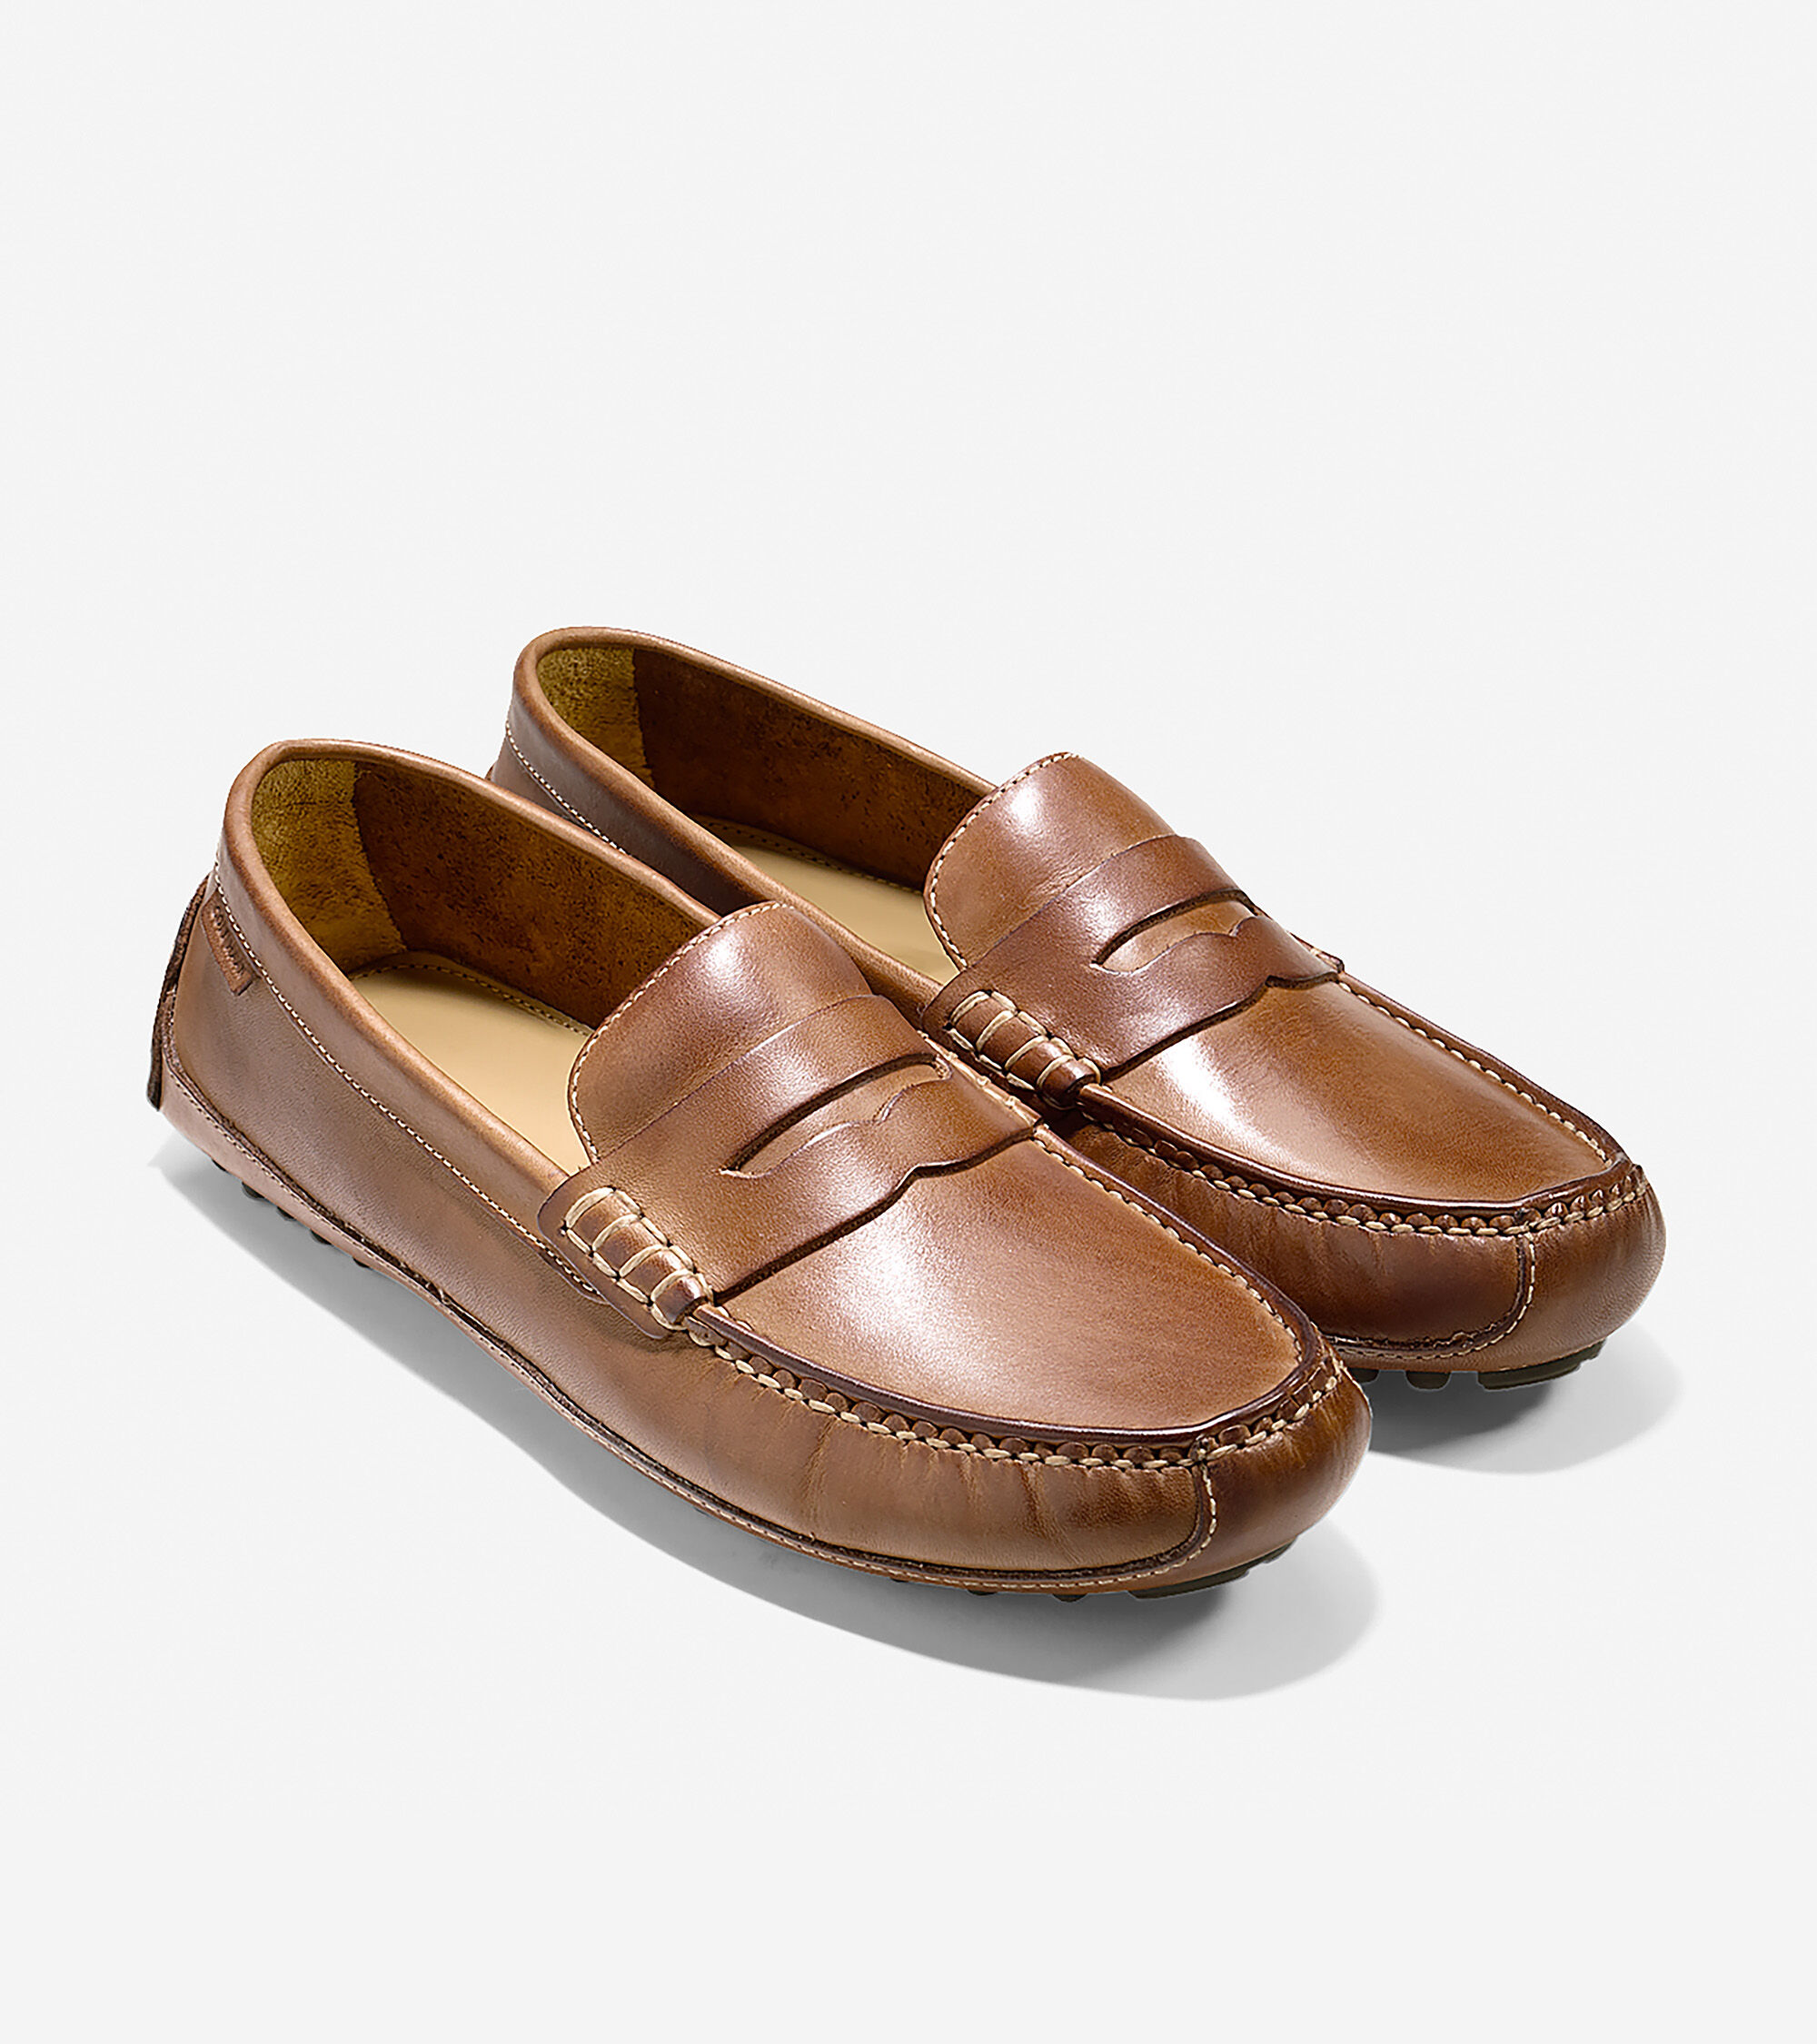 5a09b44b803 ... Grant Canoe Penny Loafer  Grant Canoe Penny Loafer.  COLEHAAN